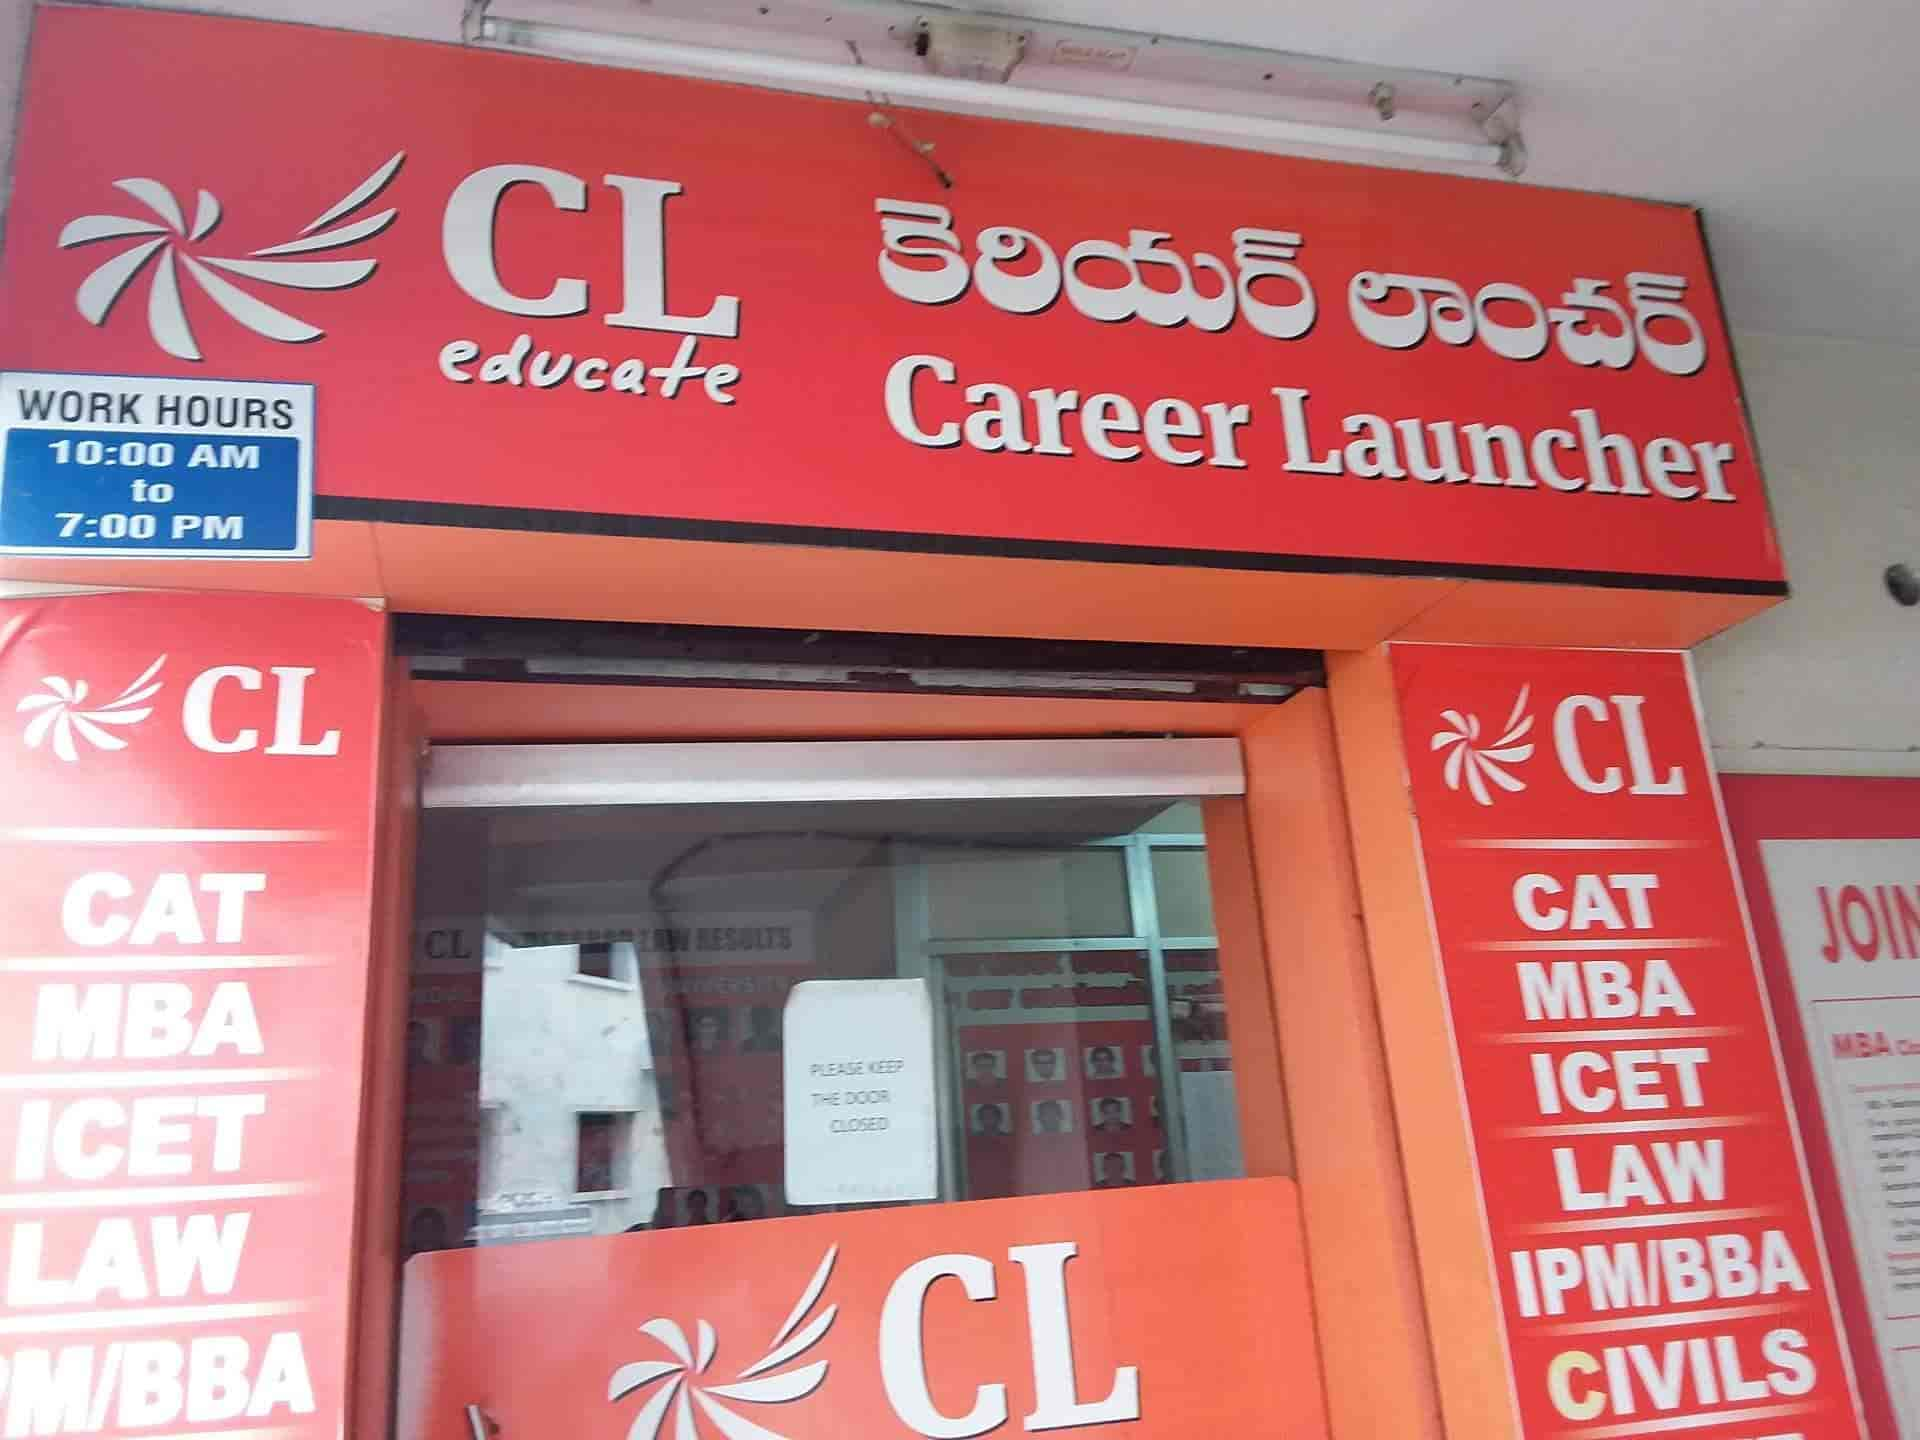 Career Launcher Ltd, Ameerpet - Tutorials in Hyderabad - Justdial